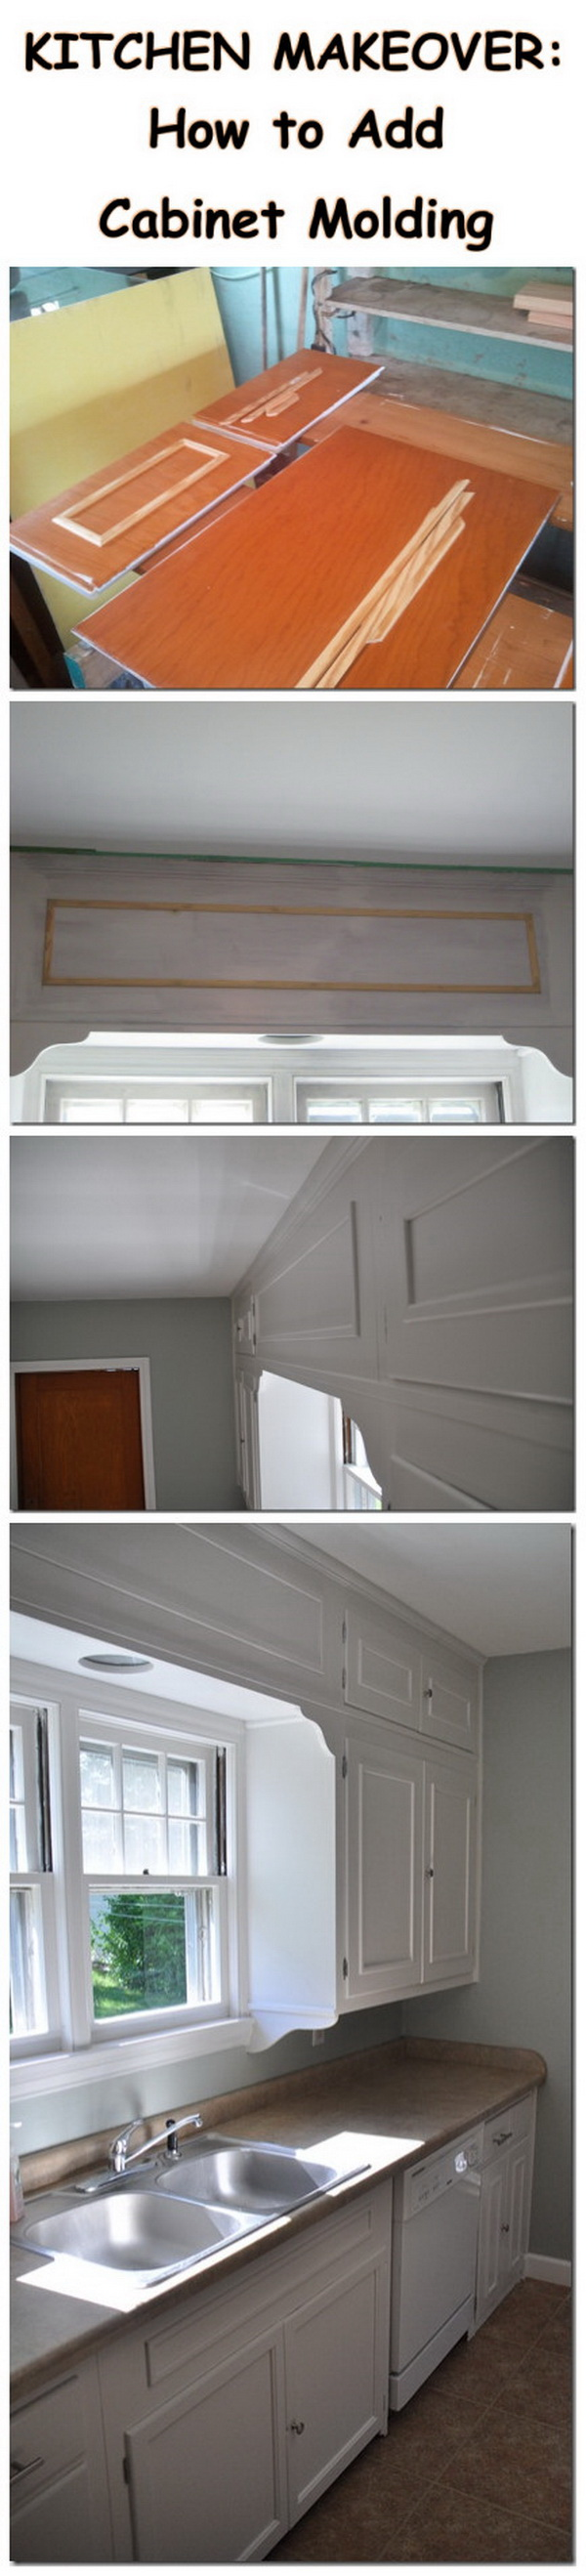 KITCHEN MAKEOVER:How to Add Cabinet Molding.